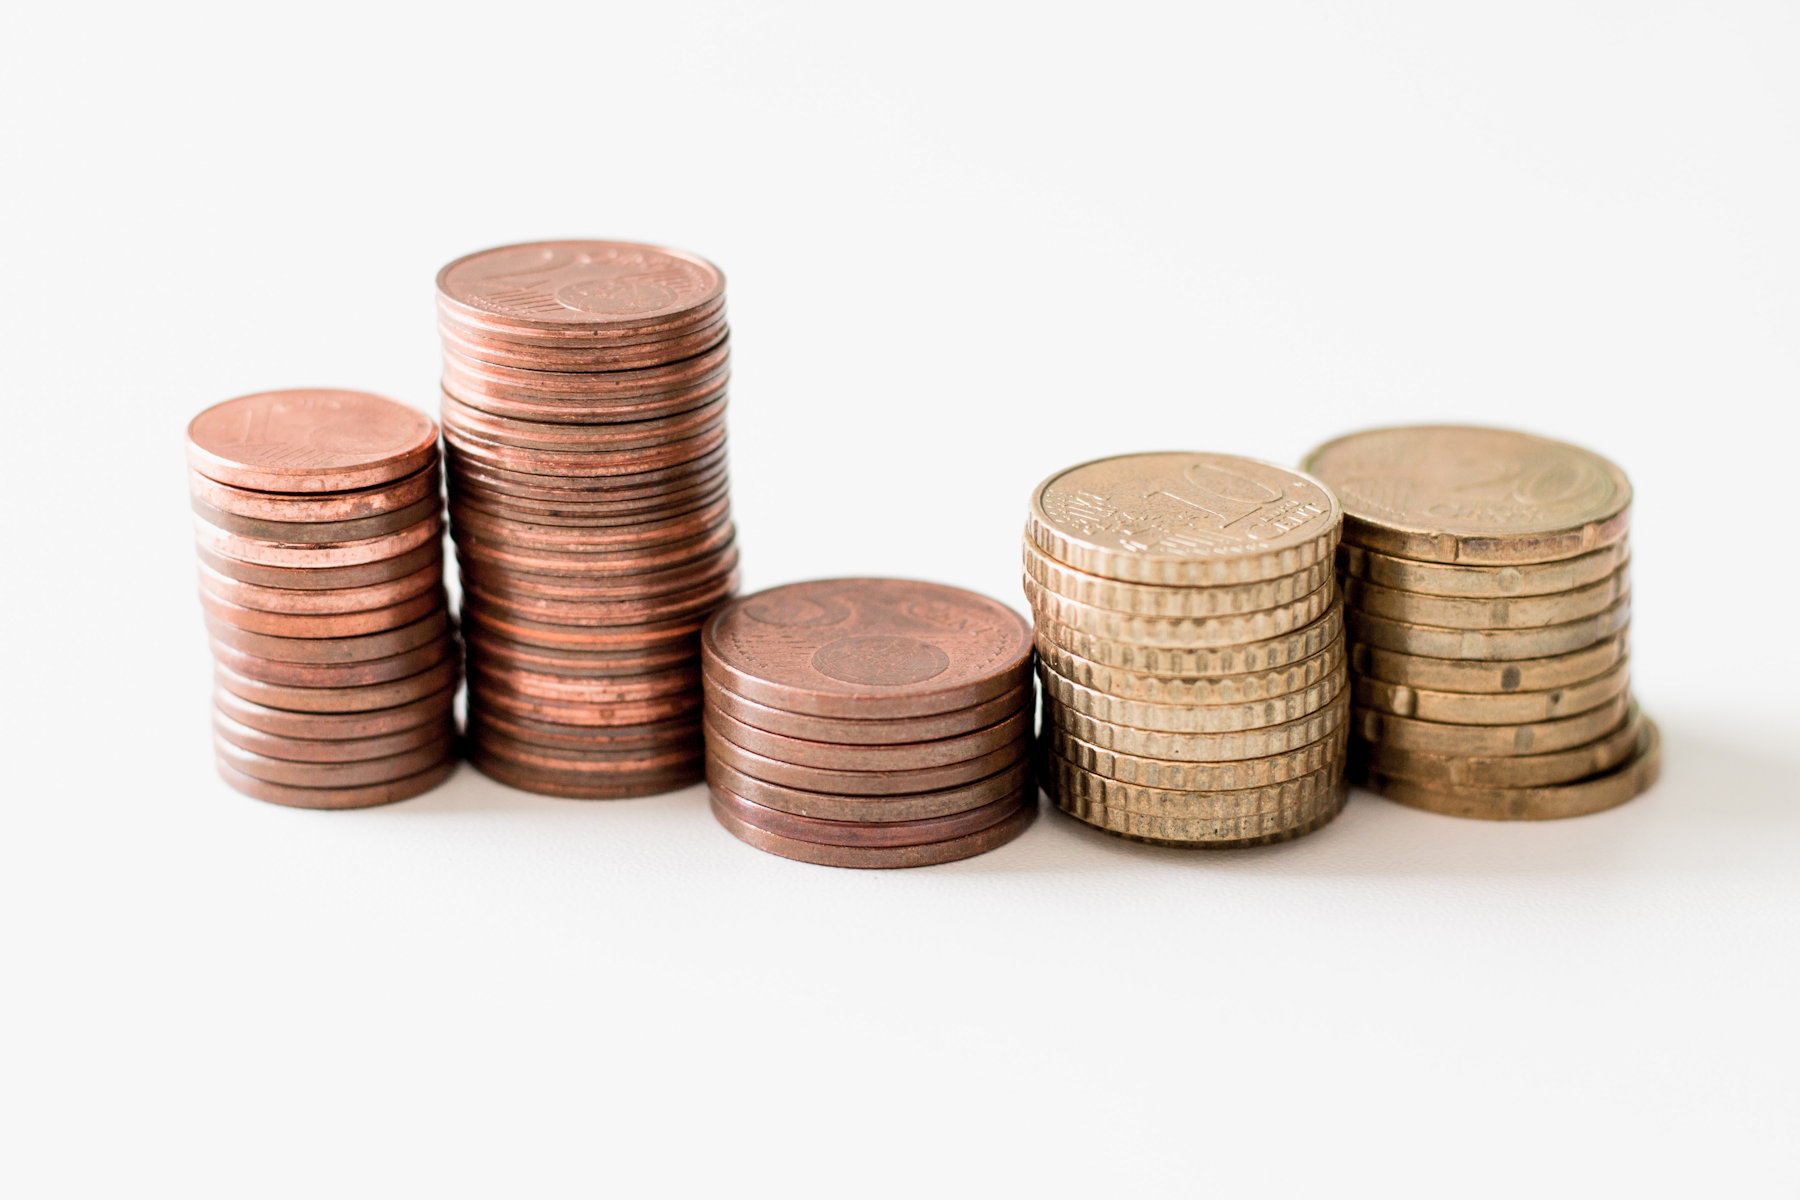 3 Common Startup Financing Challenges and How to Beat Them